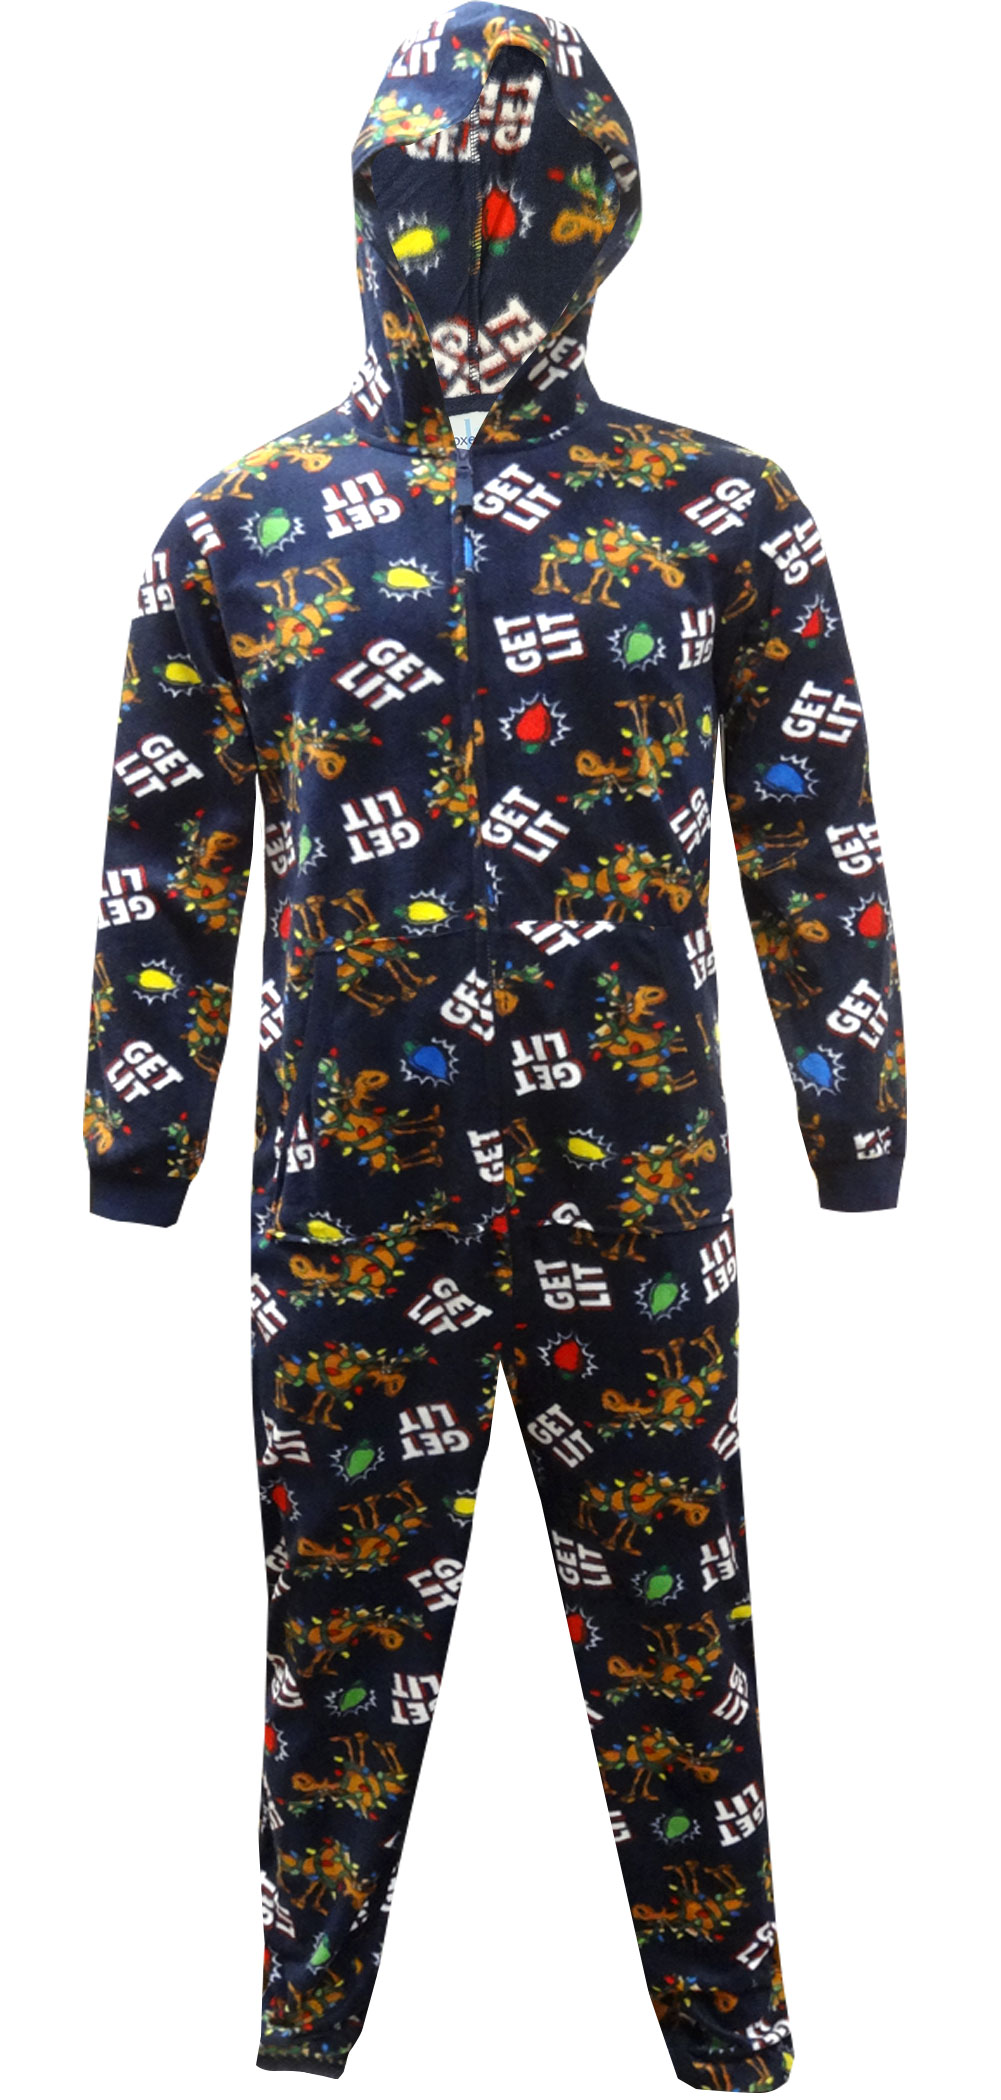 Image of Get Lit Holiday Hooded One Piece Pajama for men